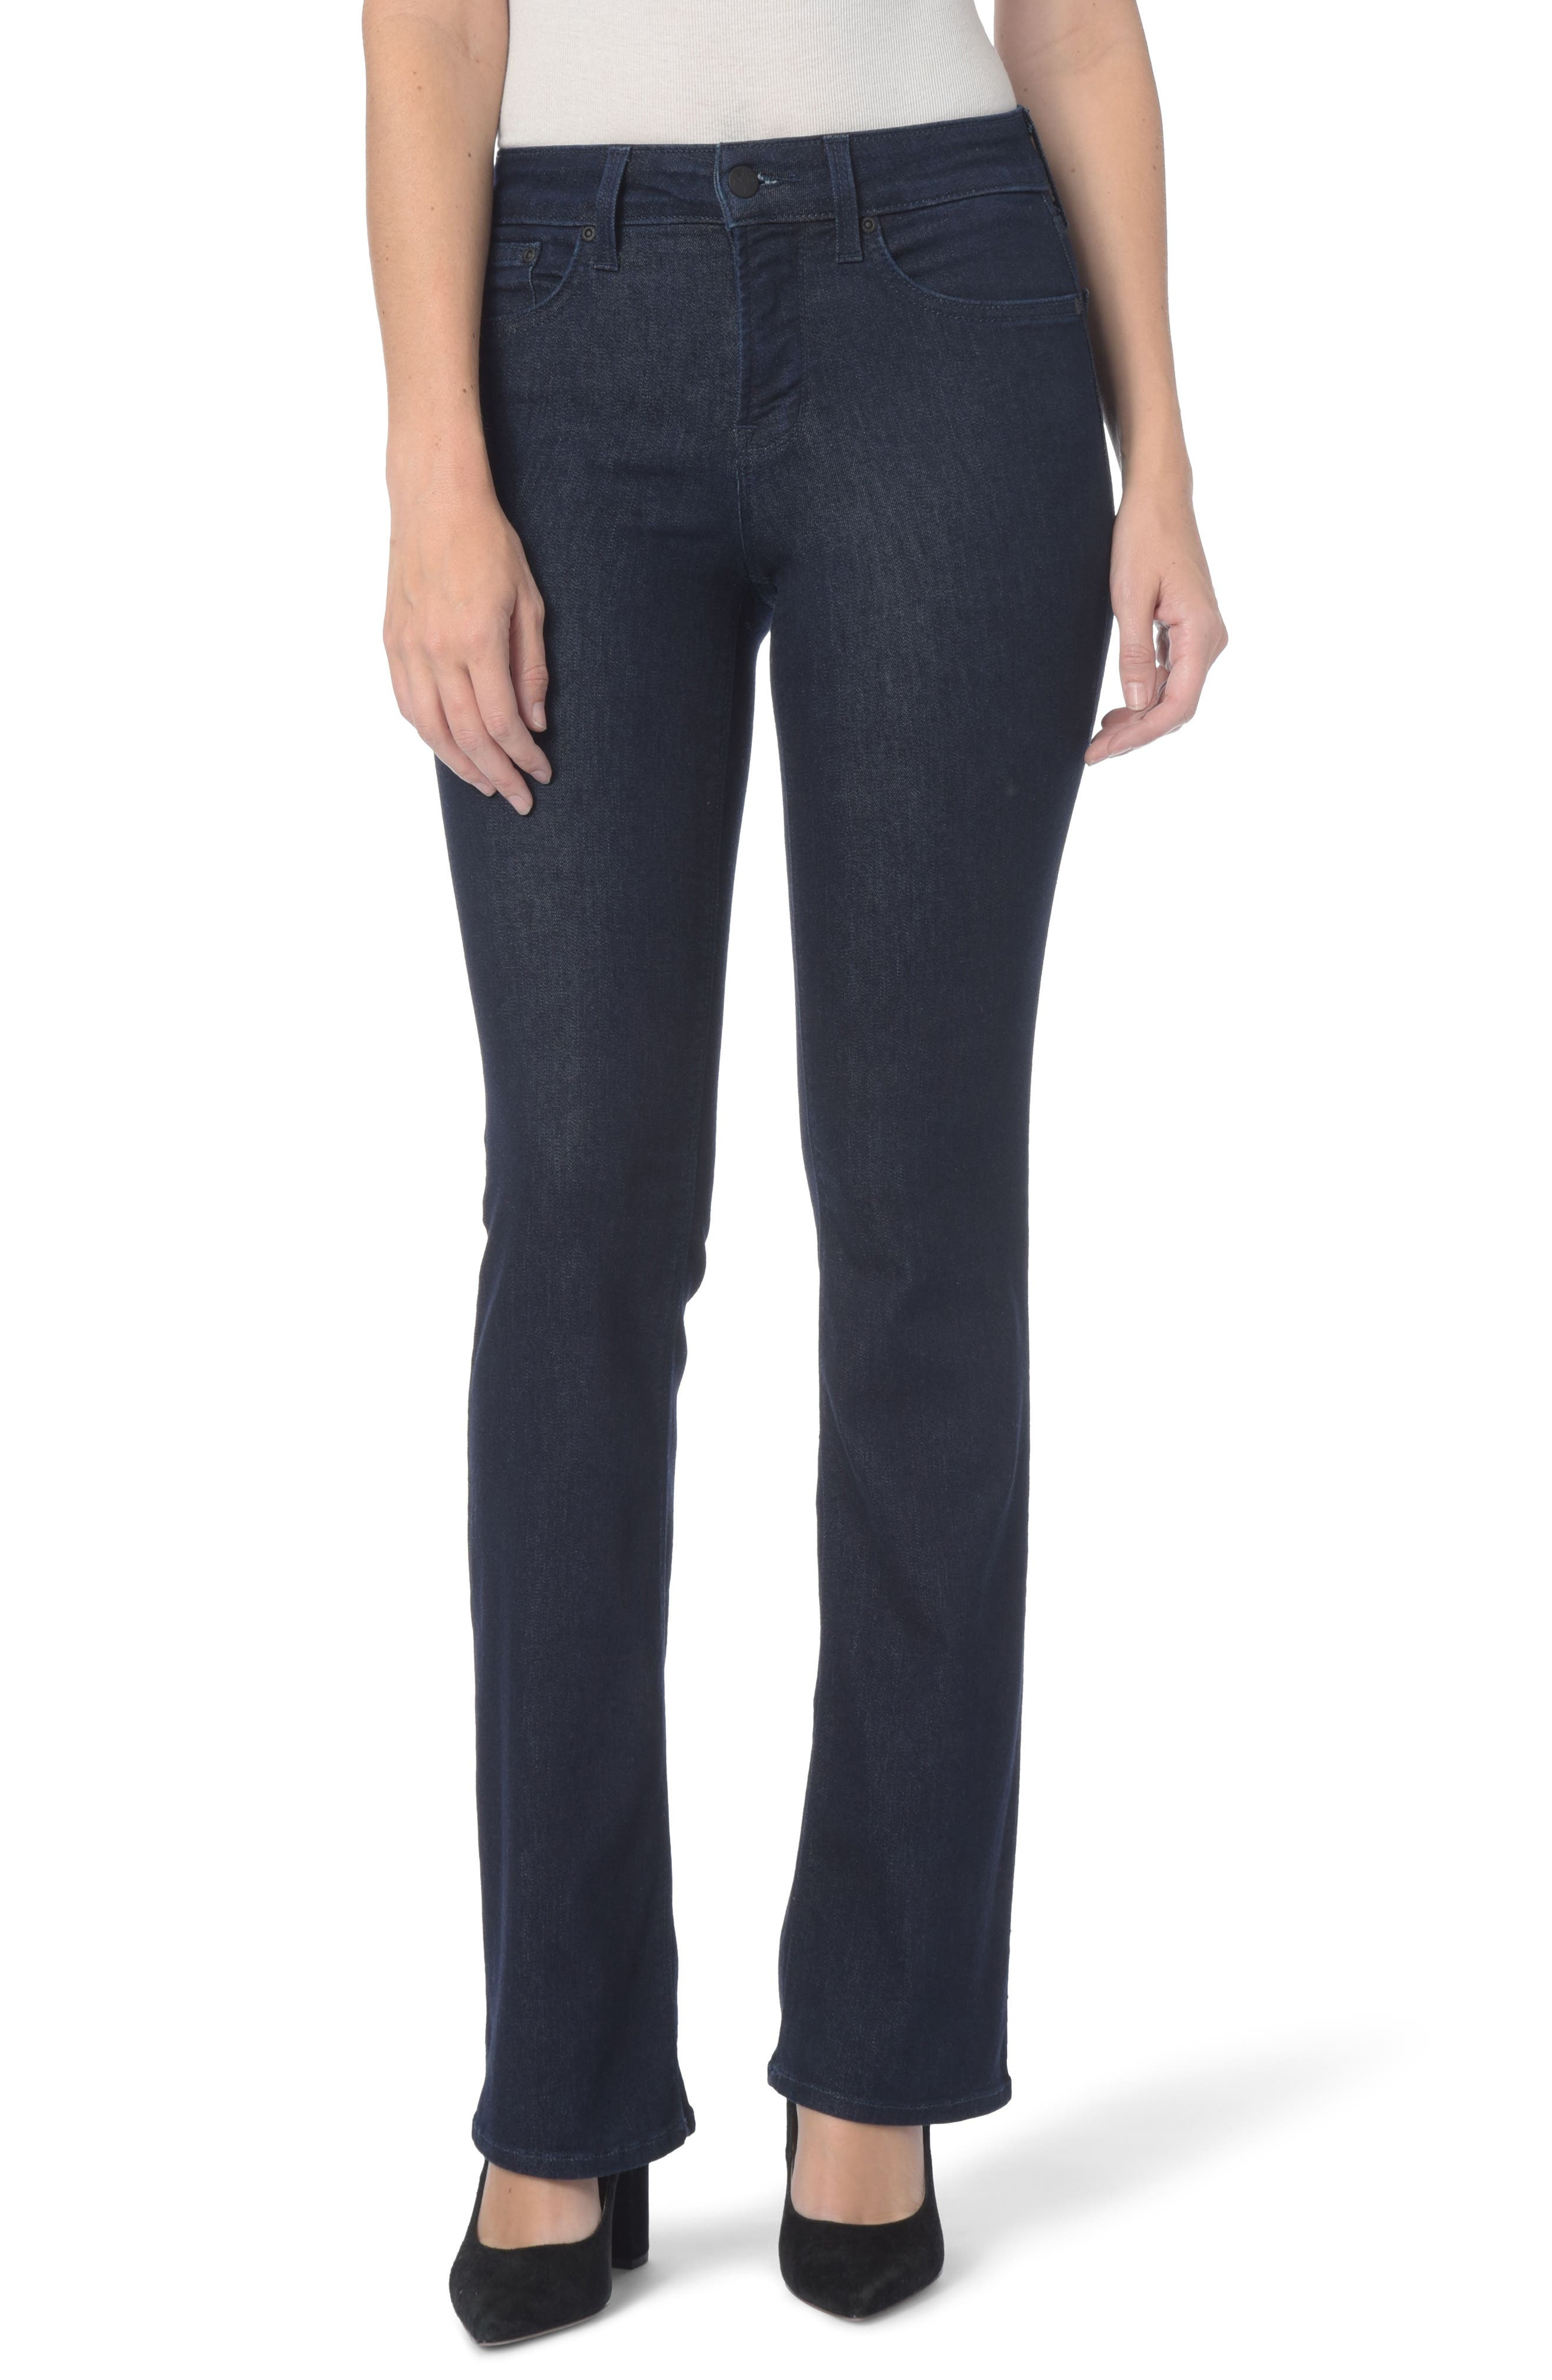 Barbara High Waist Bootcut Jeans,                         Main,                         color, RINSE